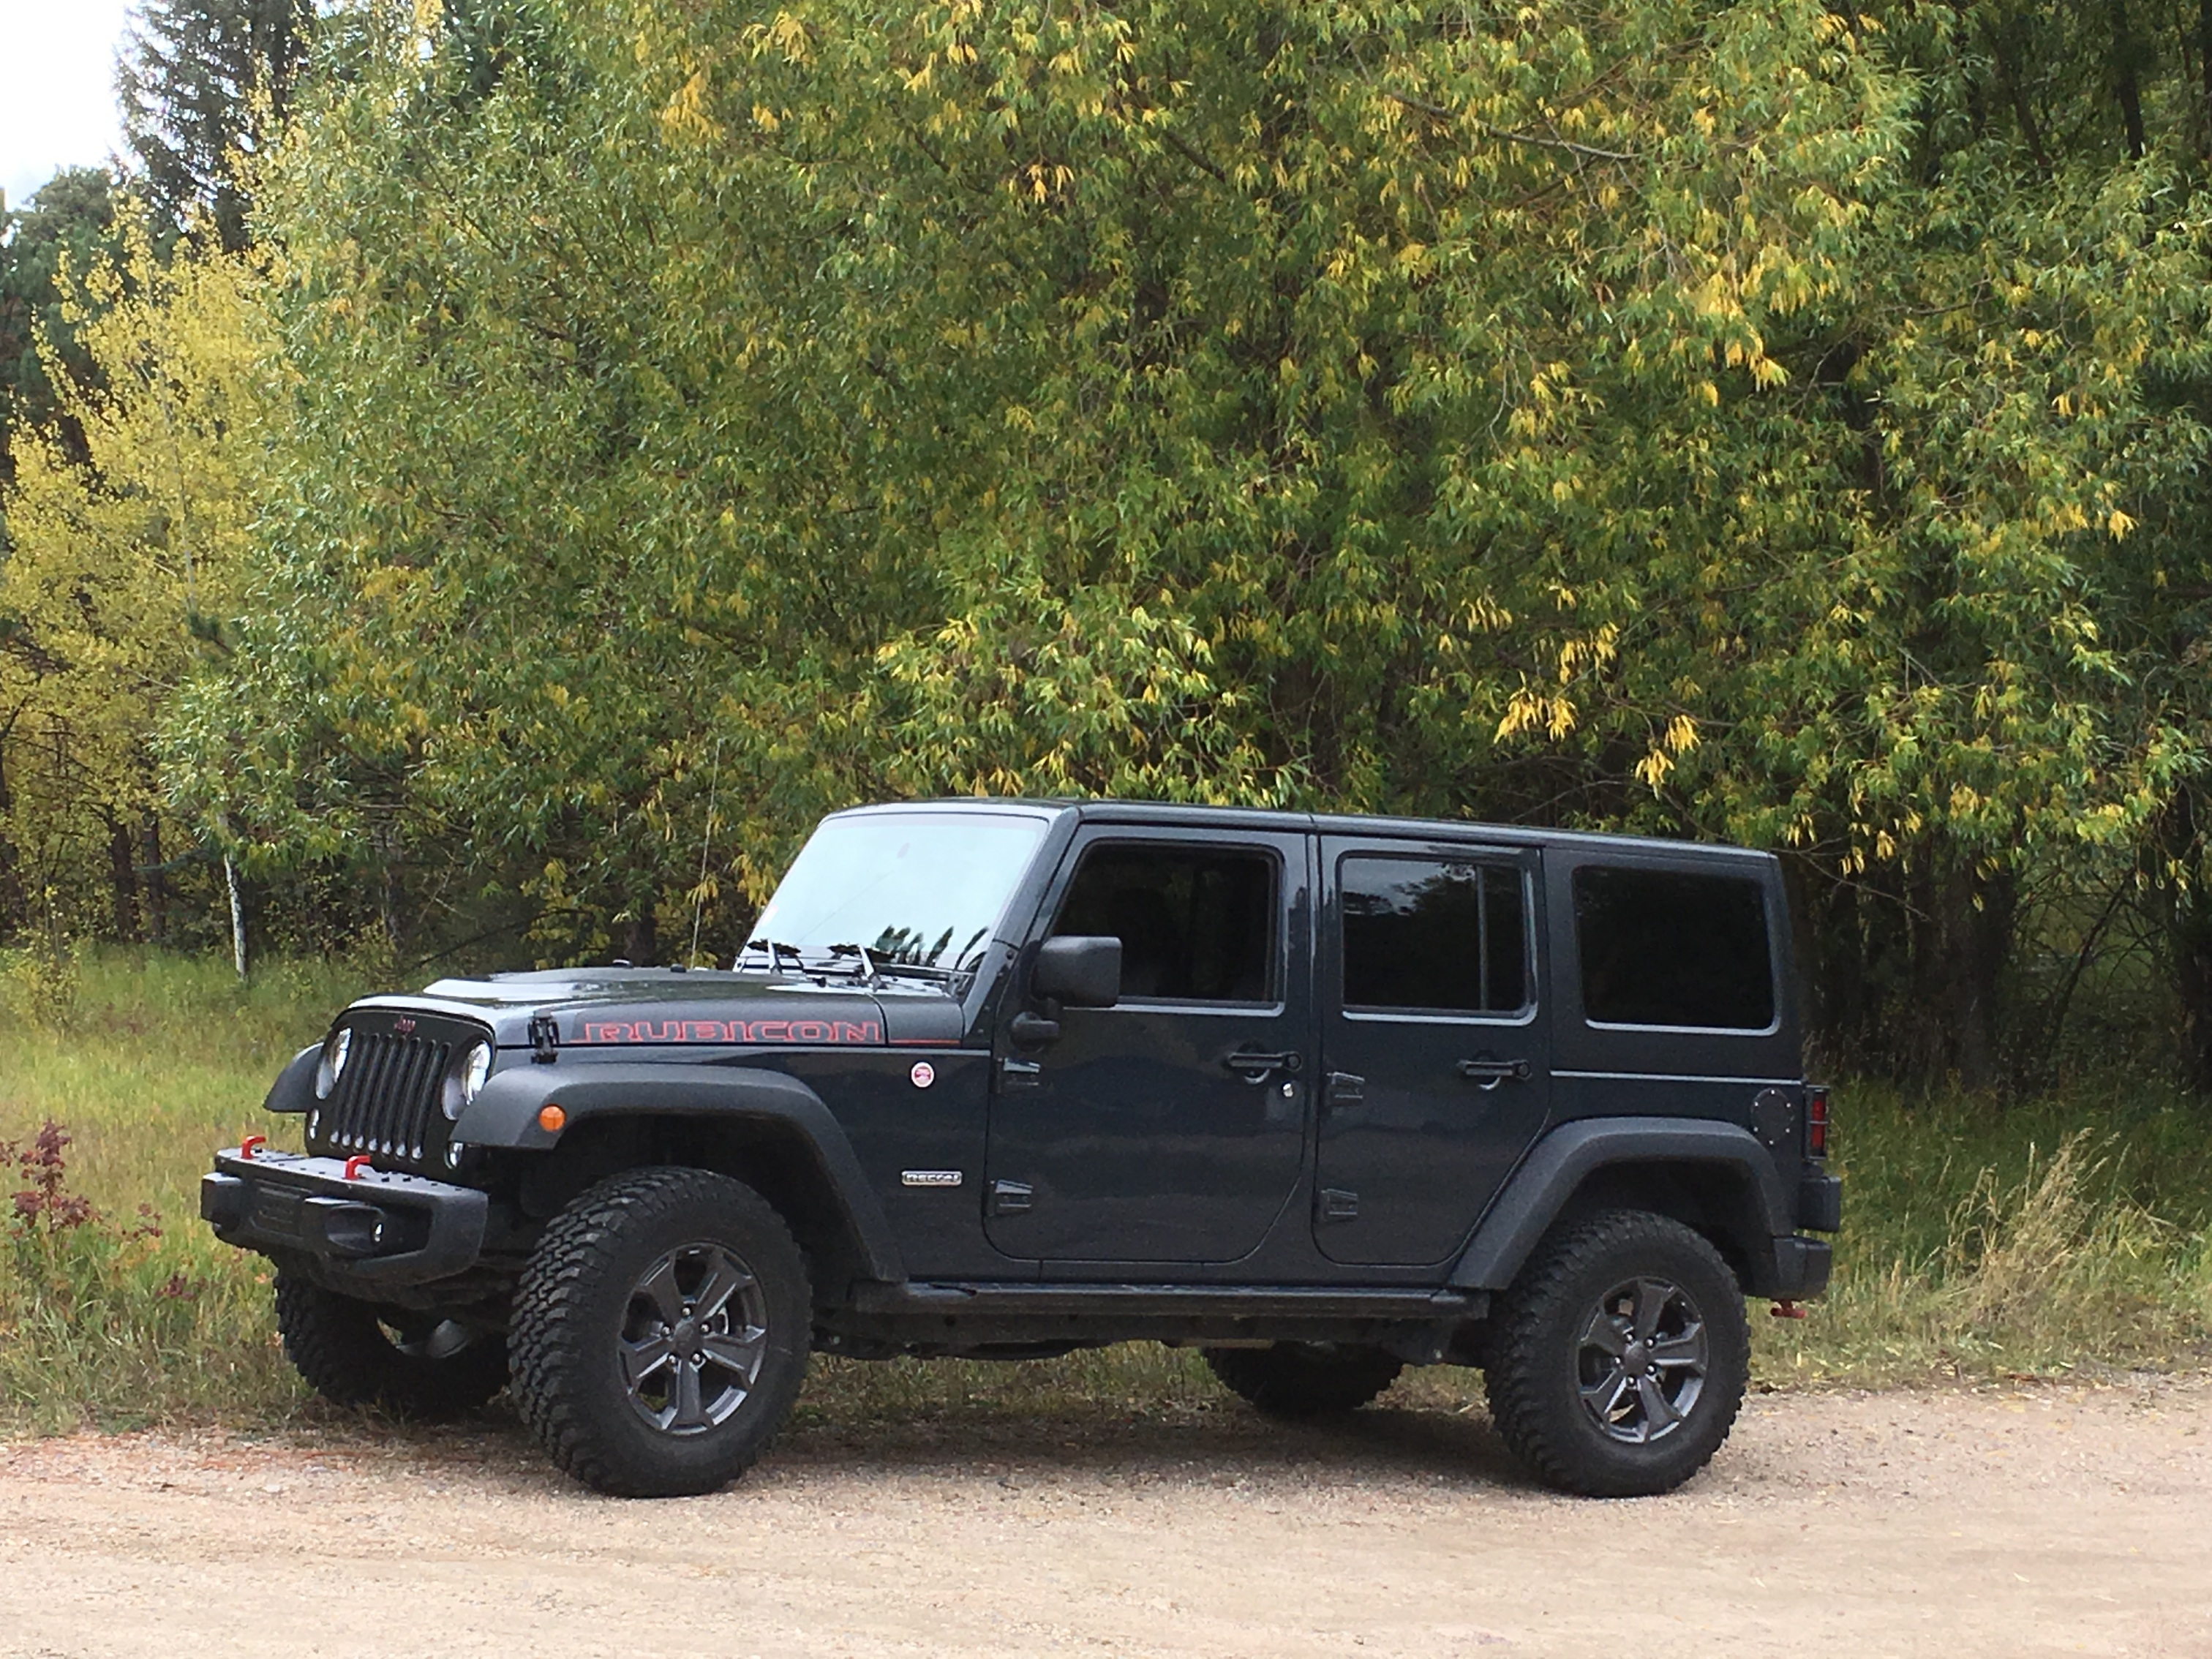 unlimited regard backcountry next pickup wrangler have truck will to diesel gen hybrid and with jeep